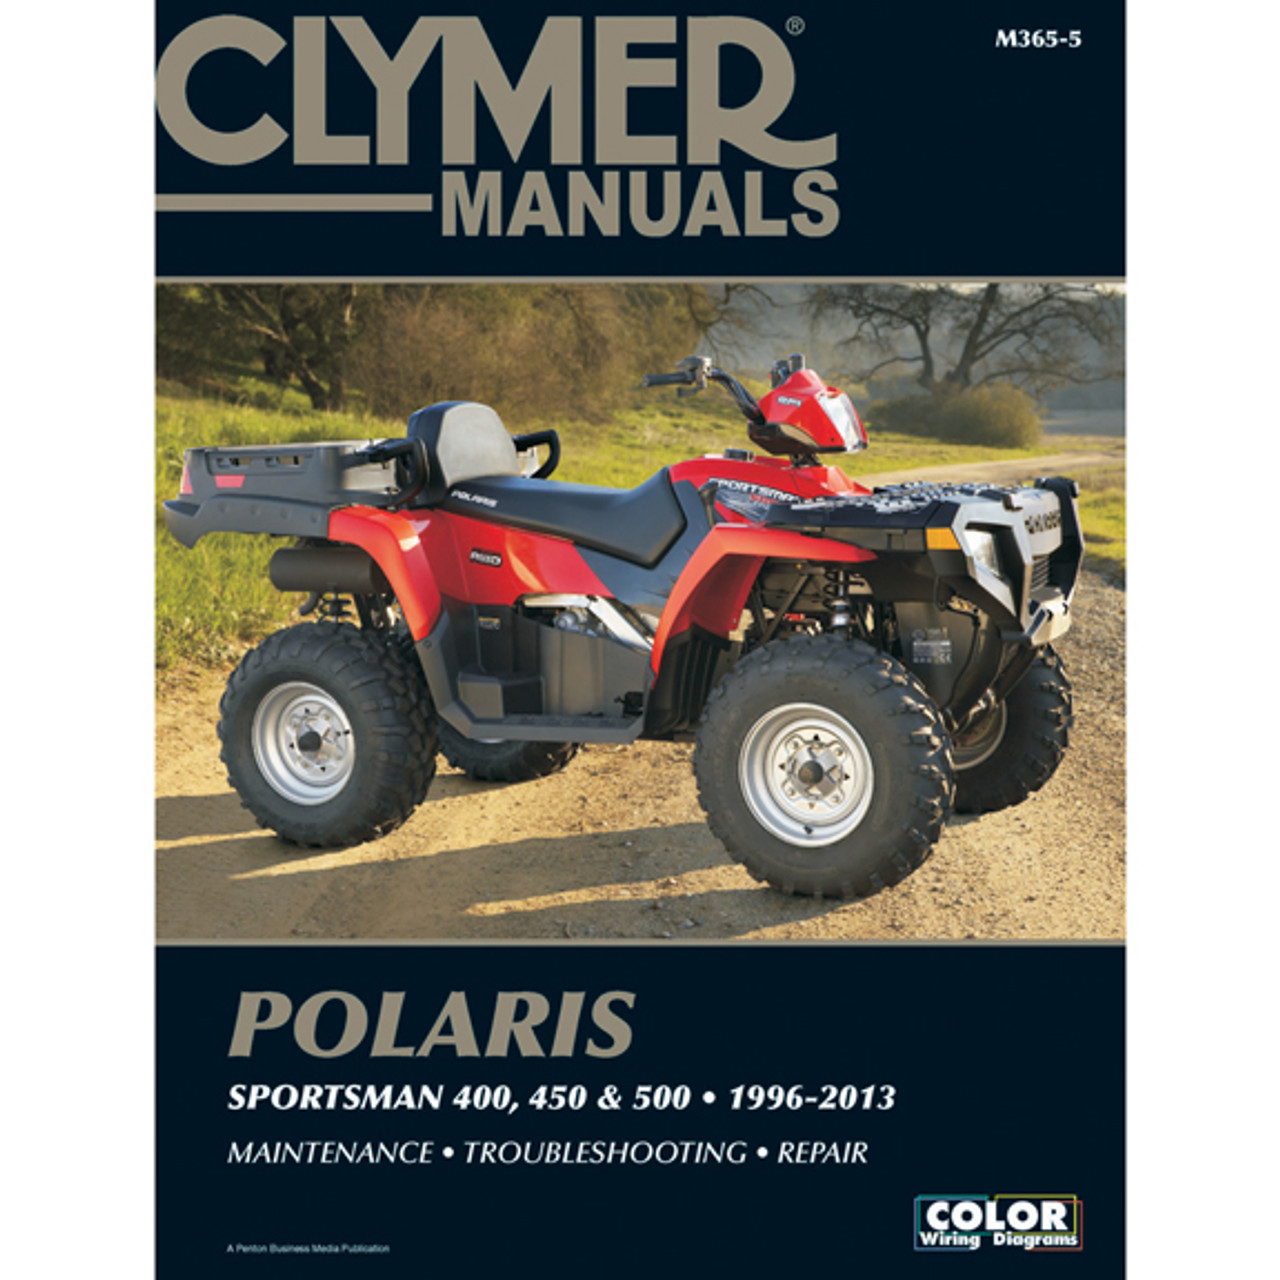 Clymer M365 5 Service Shop Repair Manual Polaris Sportsman 400 450 500 96 13 Speed Addicts